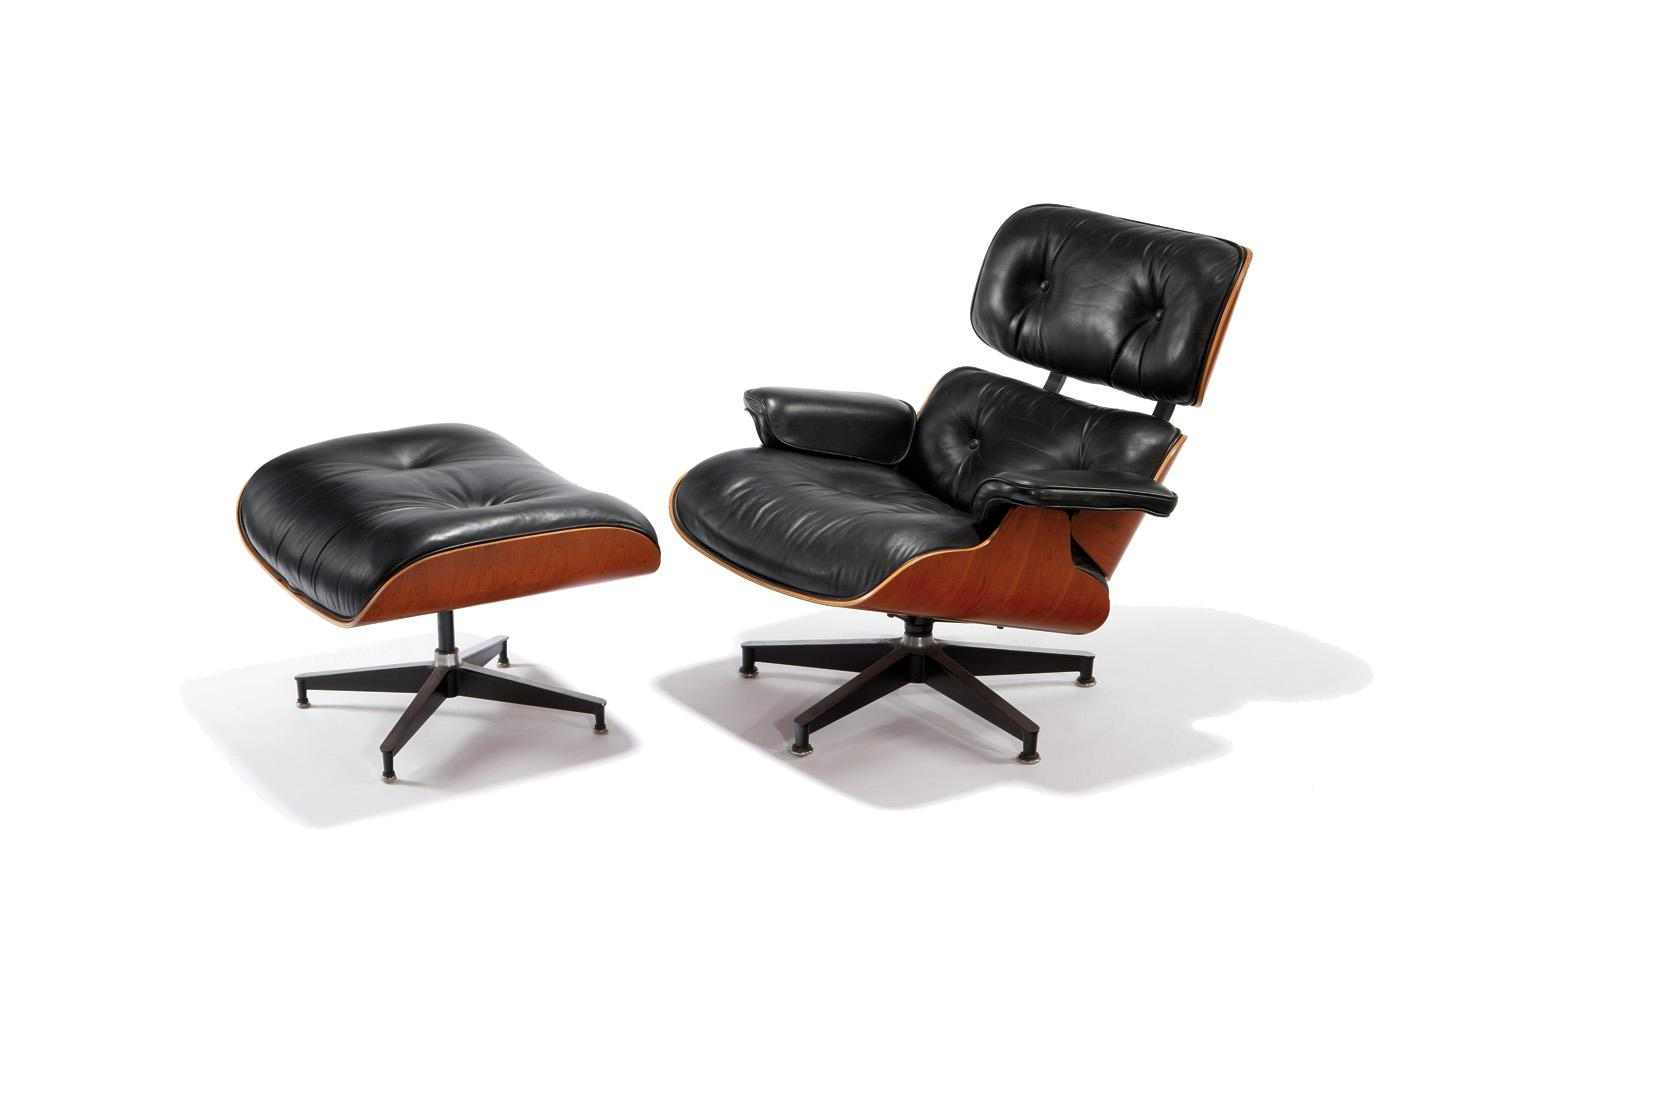 Image 1 : Charles U0026 Ray Eames   Herman Miller   Lounge Chair And Ottoman